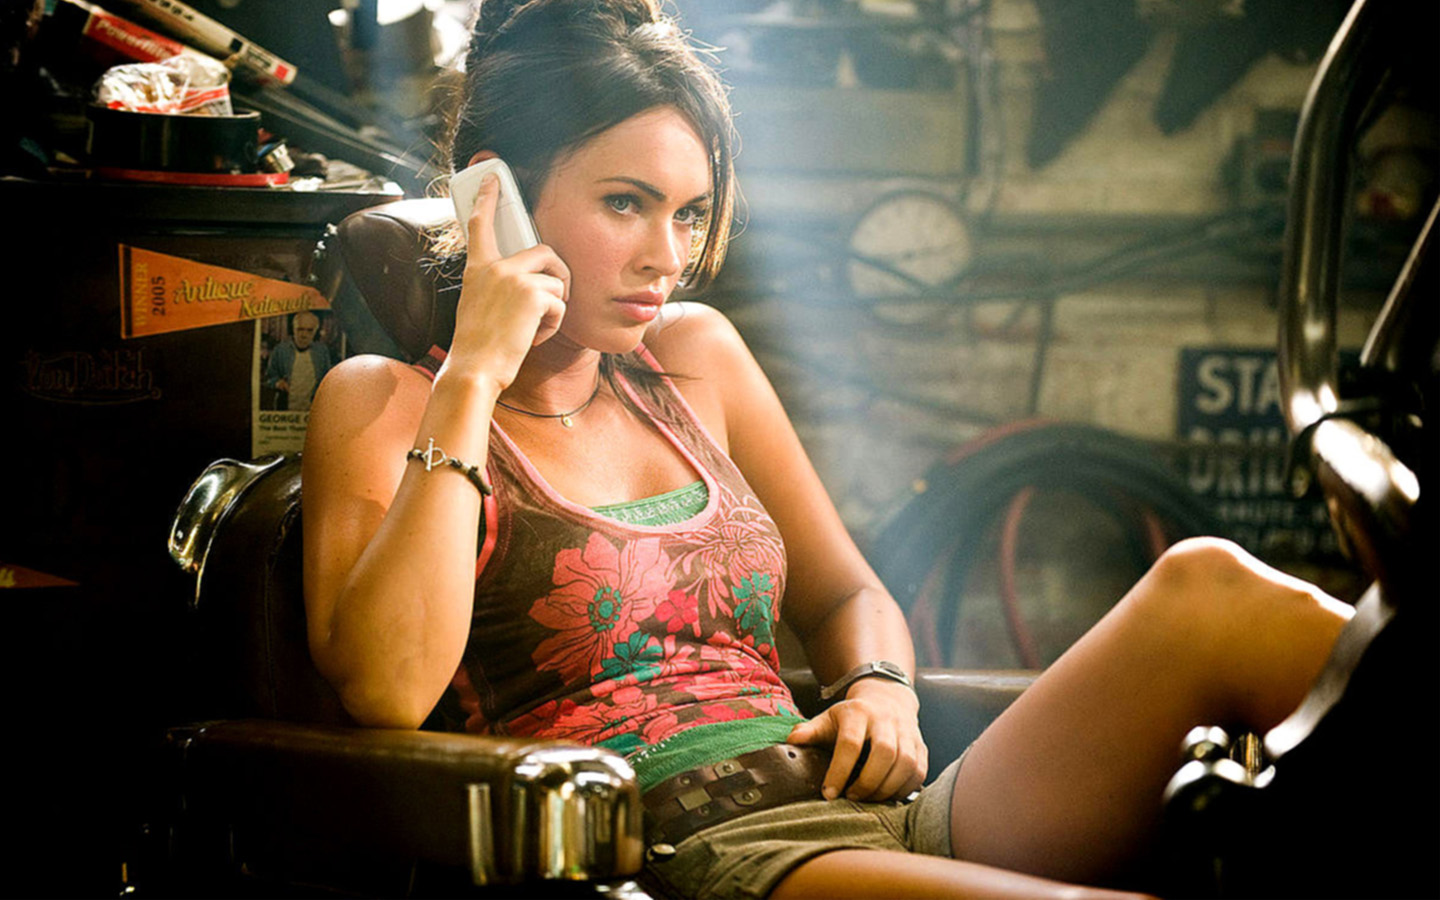 Megan Fox Exclusive Transformers 2 593.38 Kb